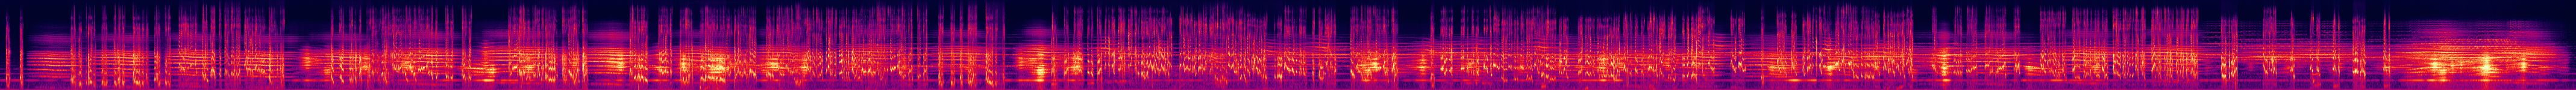 Amor Dei - 3. I'd like to believe in God but... - Spectrogram.jpg